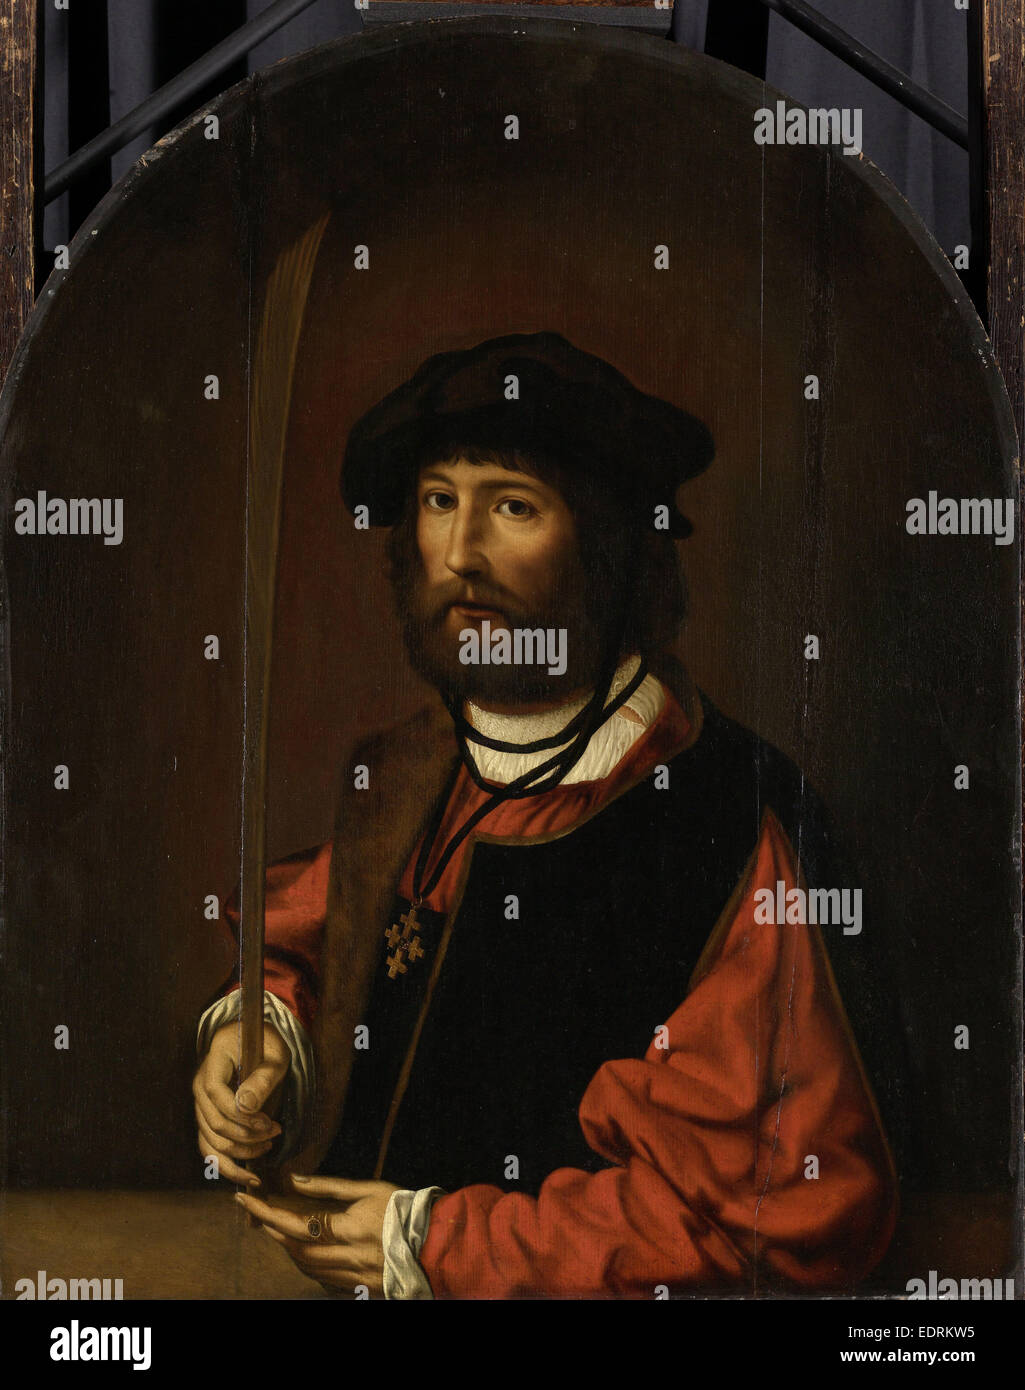 Portrait of Ruben Parduyn, knight of the Holy Sepulchre, copy after Jan Gossaert, after c. 1644 - Stock Image